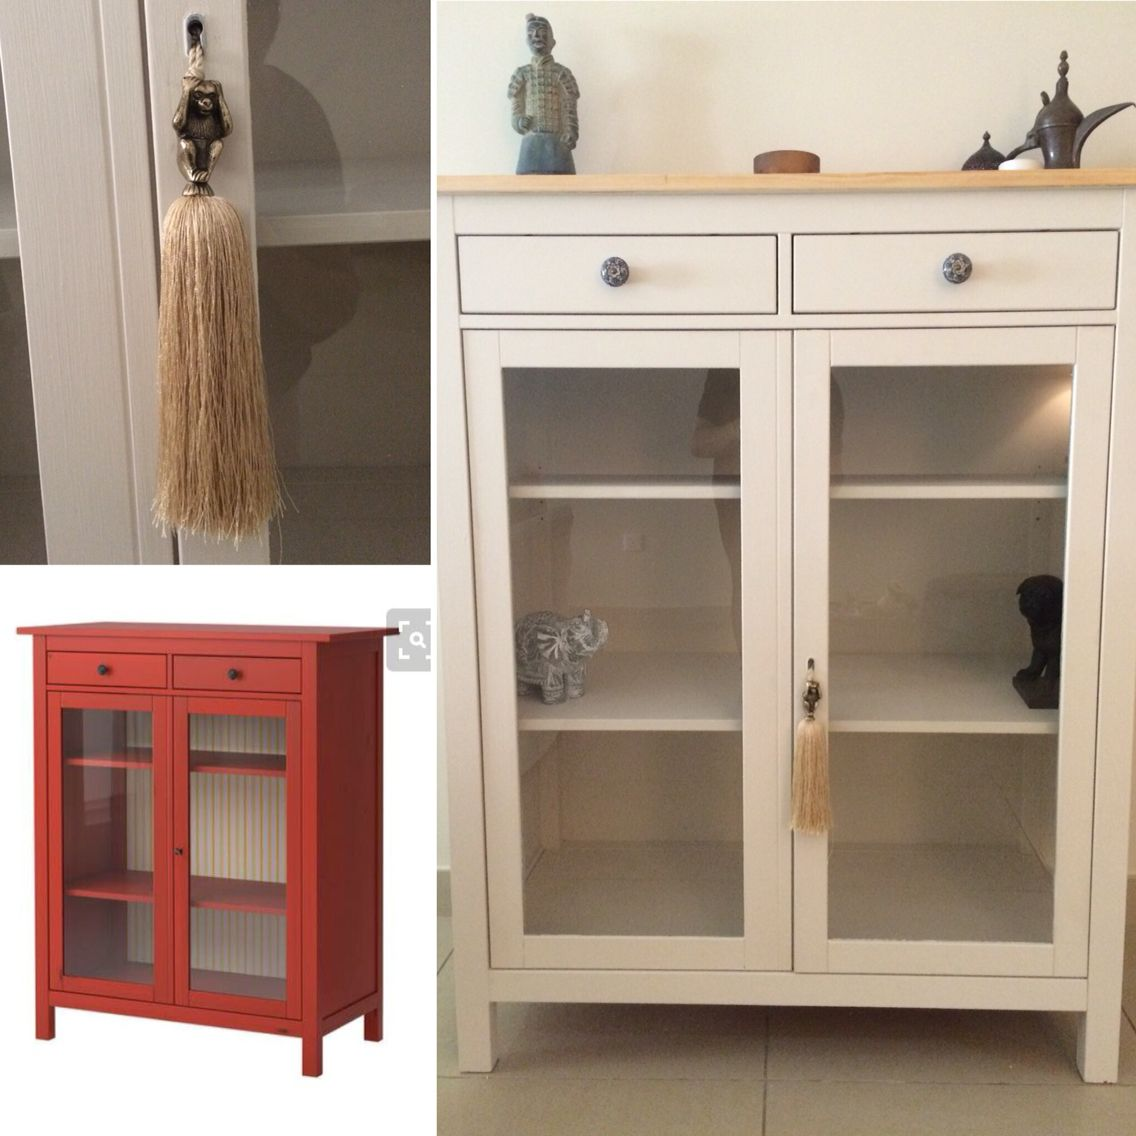 IKEA Hemnes Linen Cabinet Upcycle. So Glad I Did This.